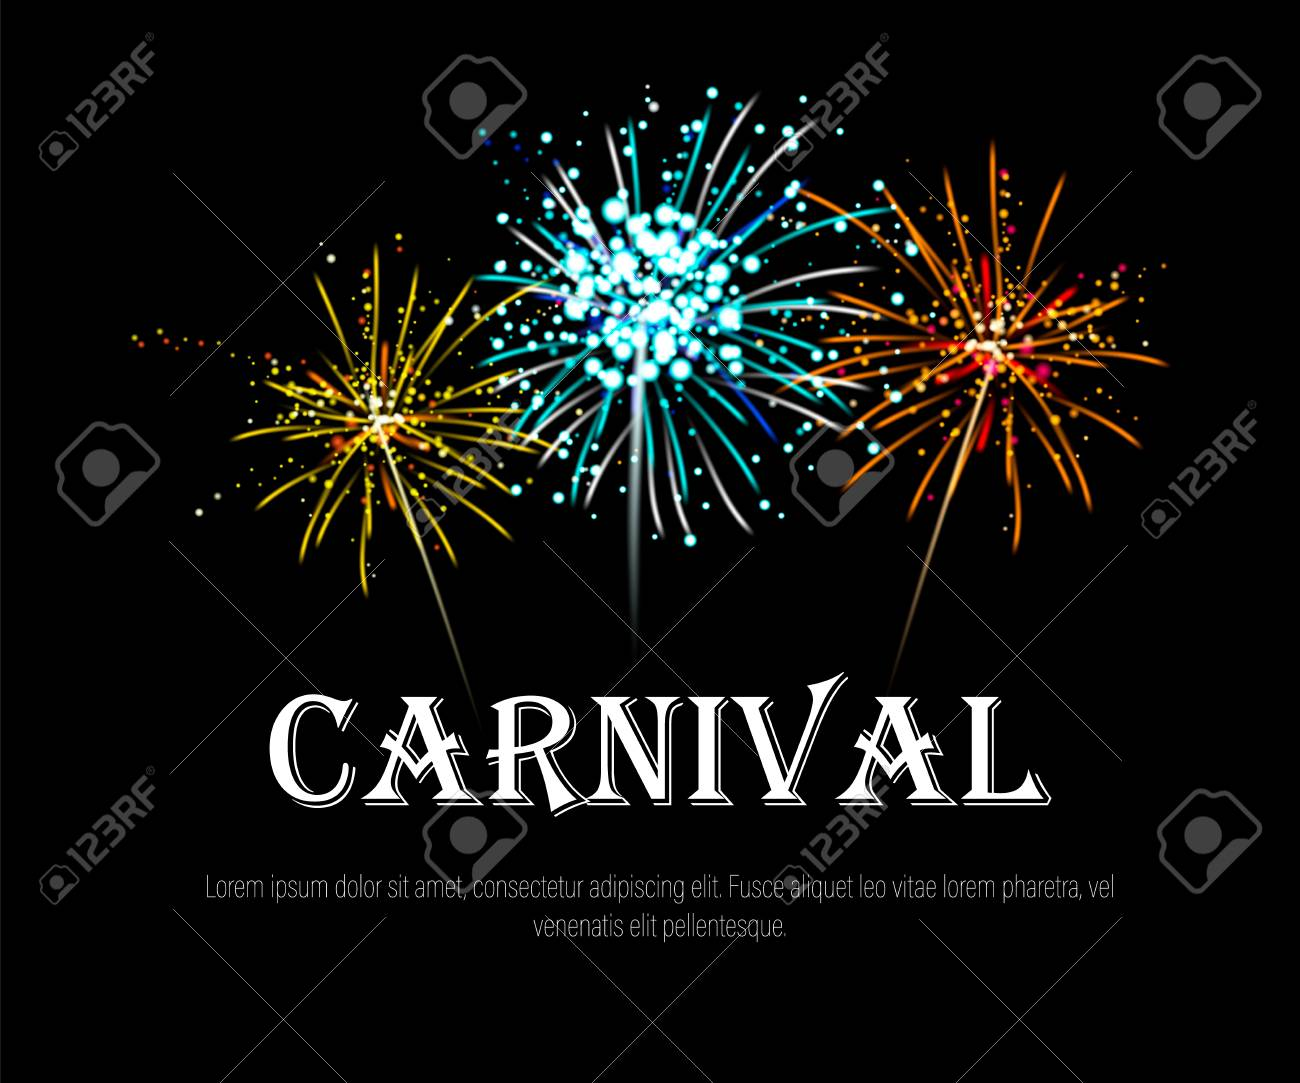 Happy carnival banner with realistic yellow, blue, orange fireworks